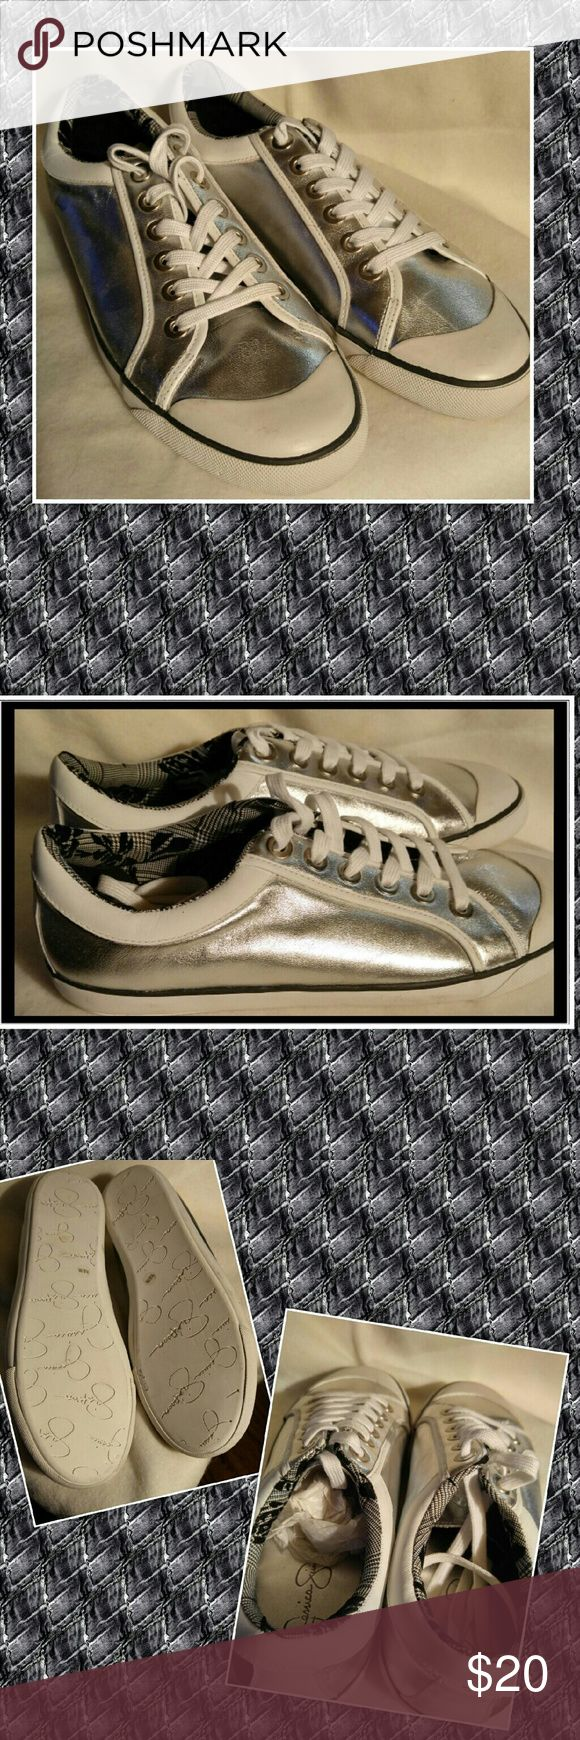 Jessica Simpson CASEE Silver flat sneaker 9.5 NEW Jessica Simpson  CASEE Silver Flat sneaker  9.5  NEW Jessica Simpson Shoes Sneakers